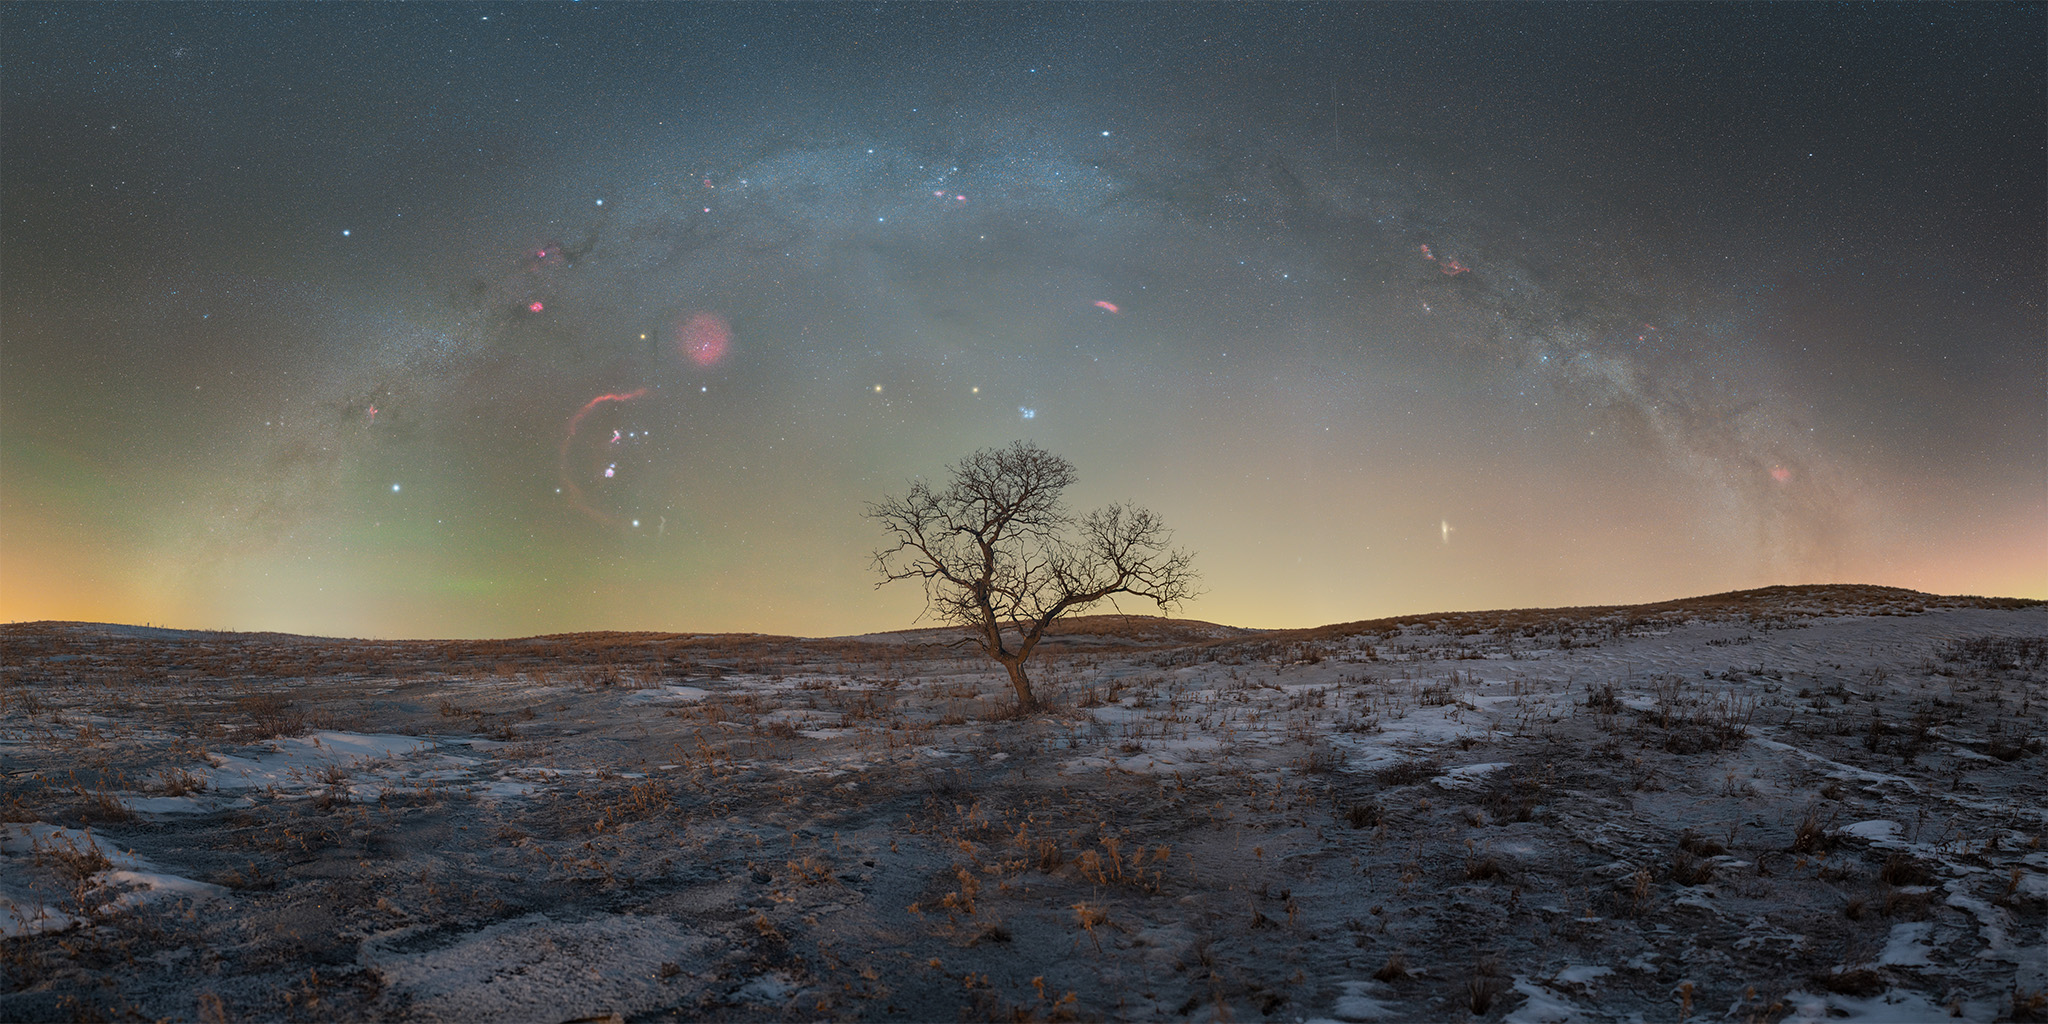 Night Photography depicting The winter milky way arch over a tree in saskatchewan